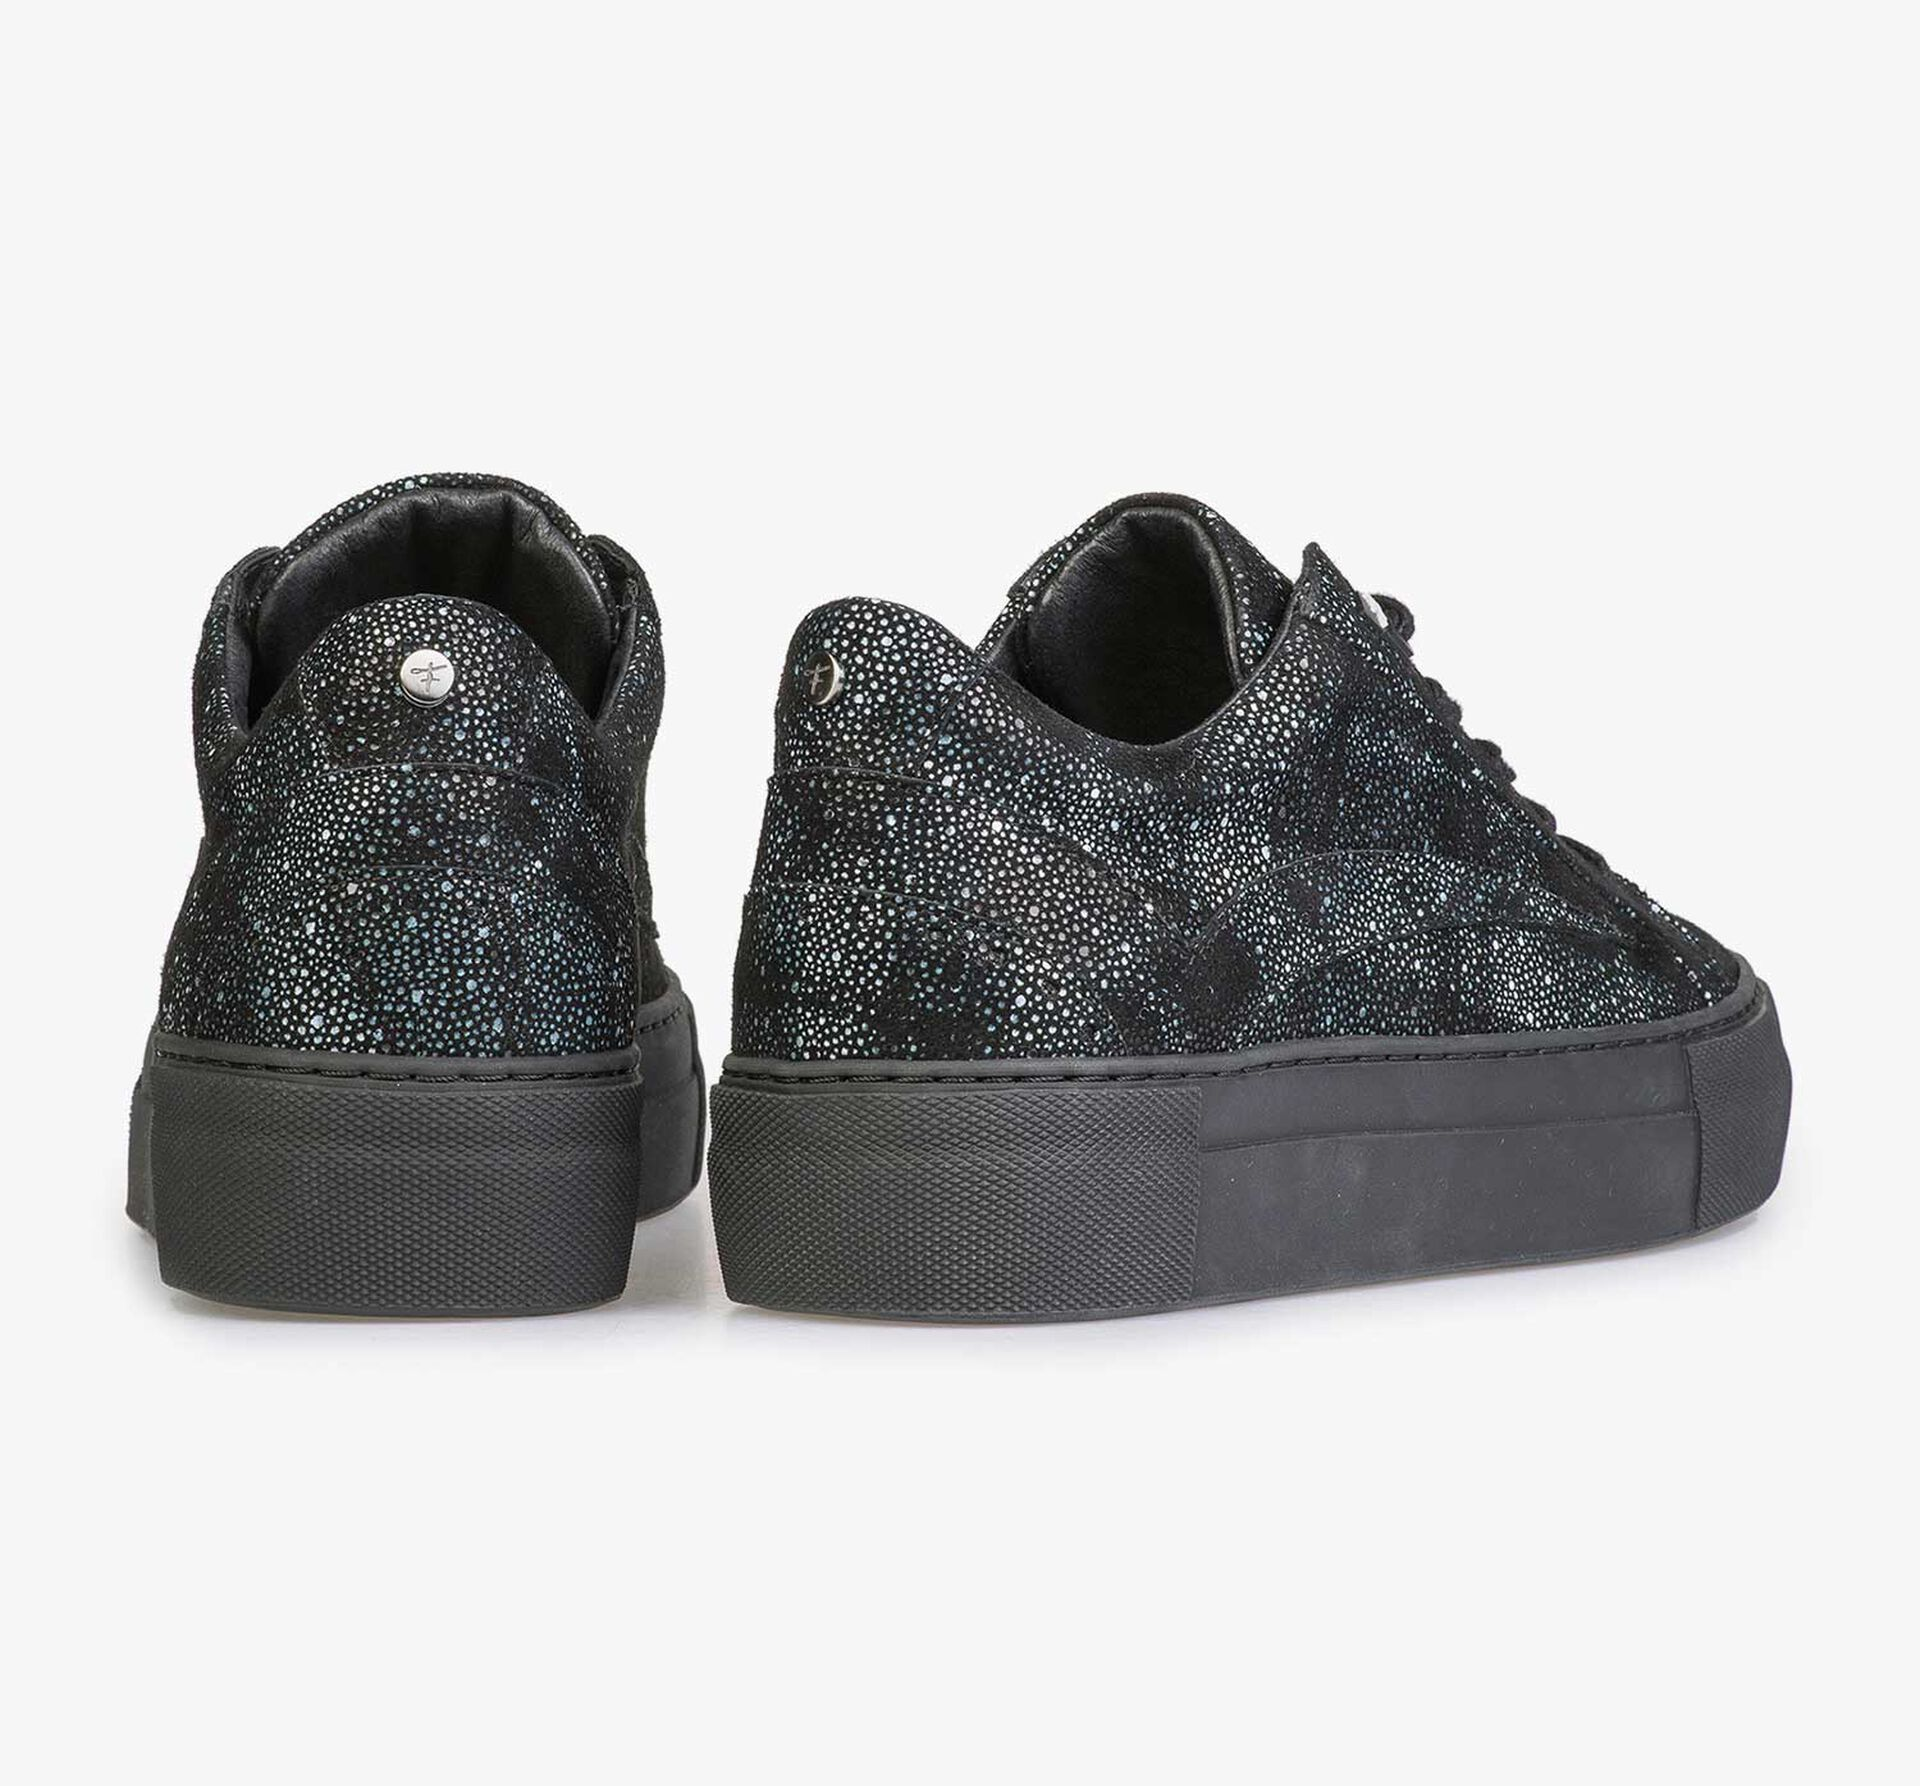 Leather sneaker with black/blue check pattern